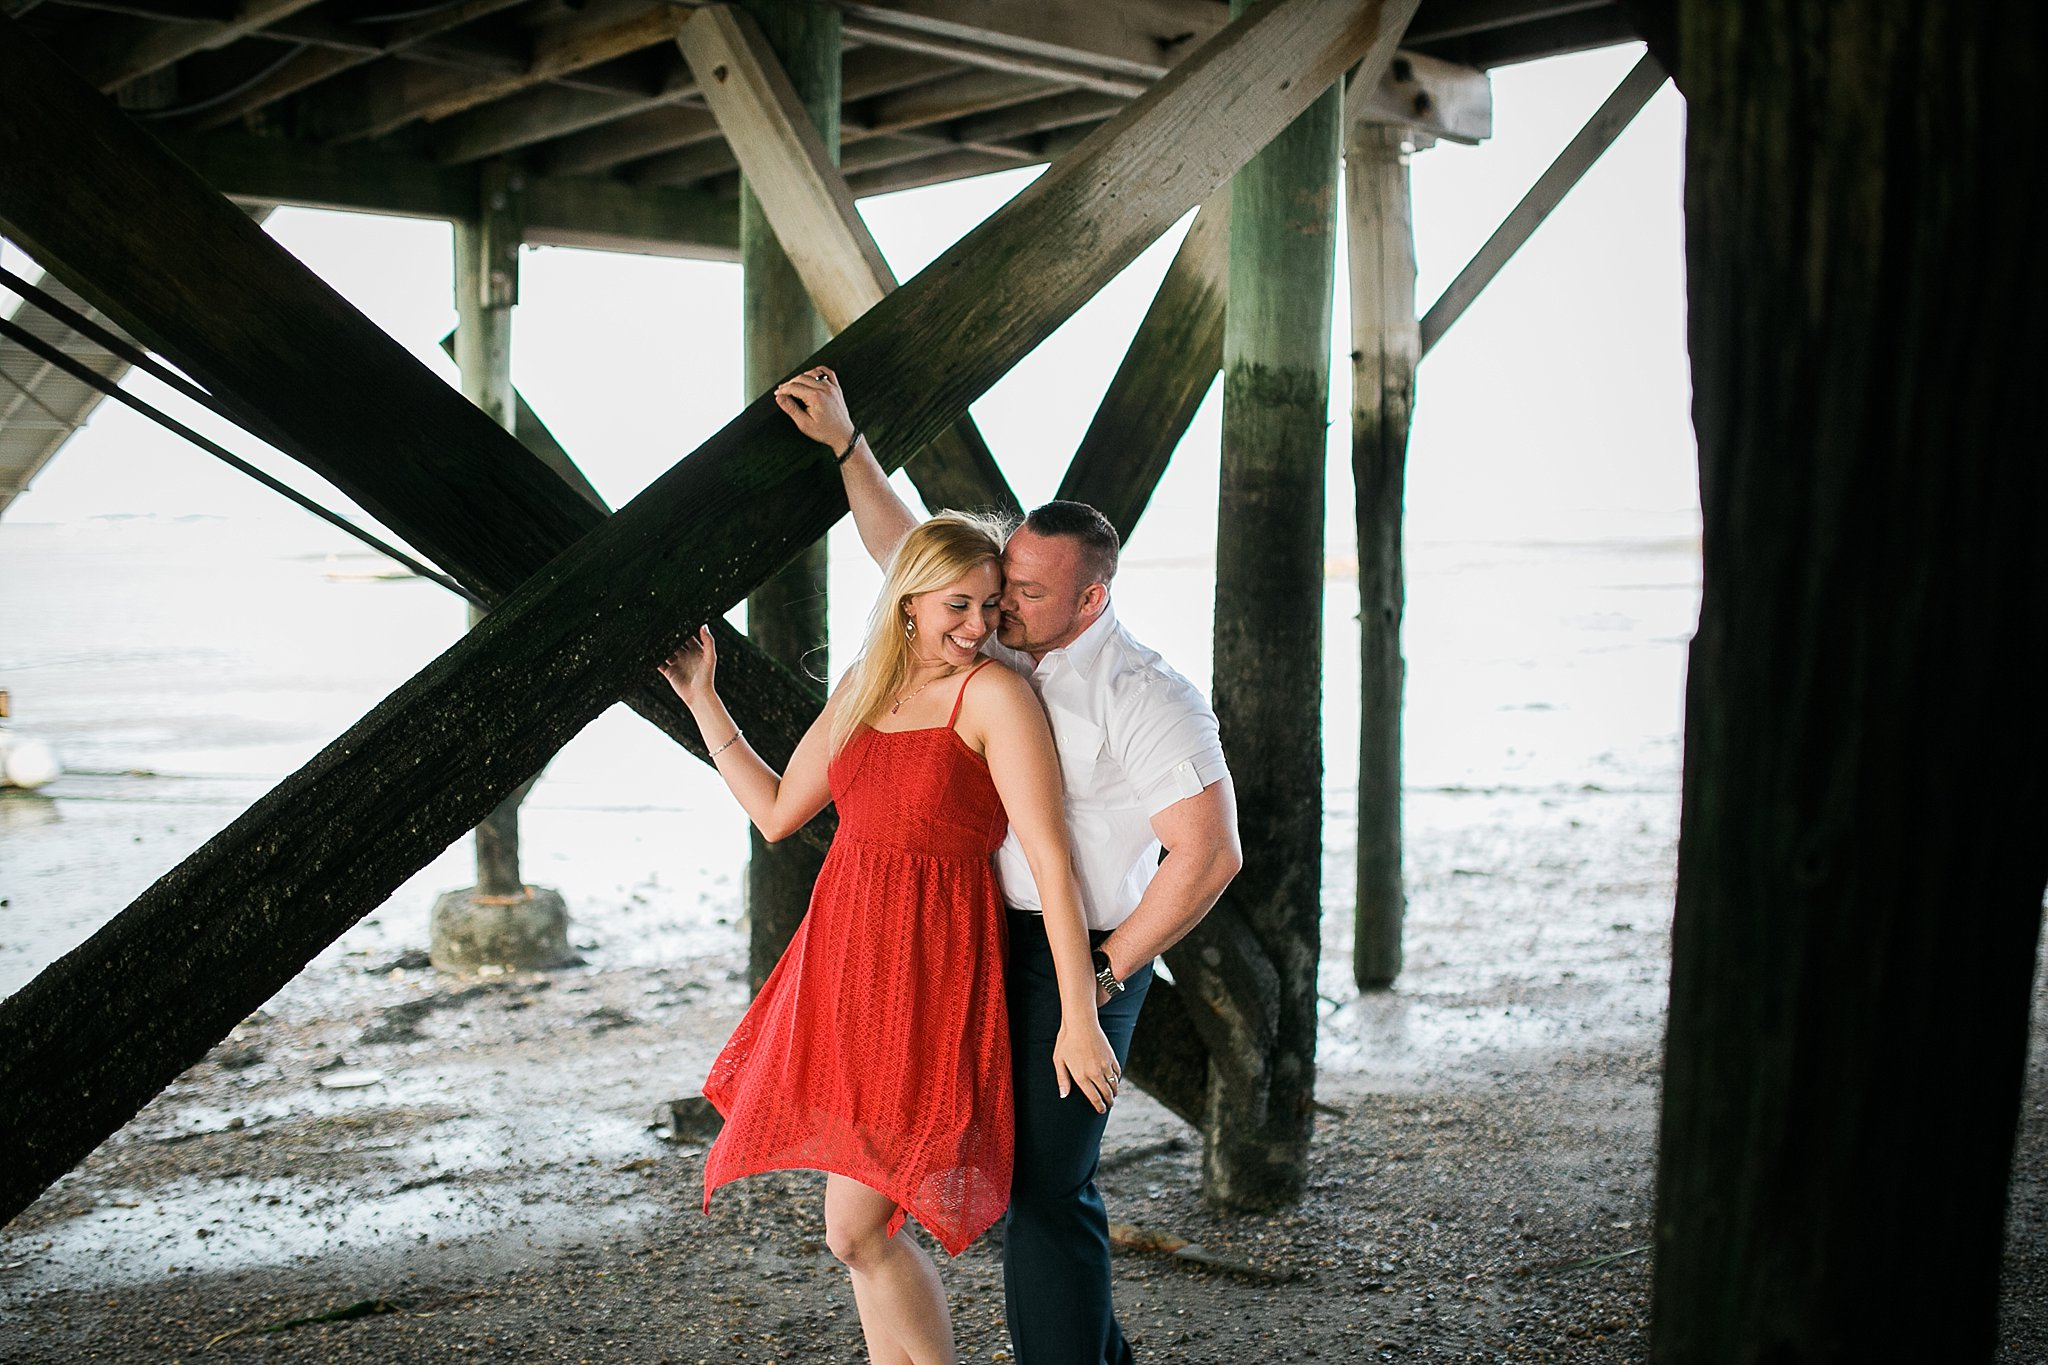 Wollaston Beach Engagement Session Sweet Alice Photography7.jpg